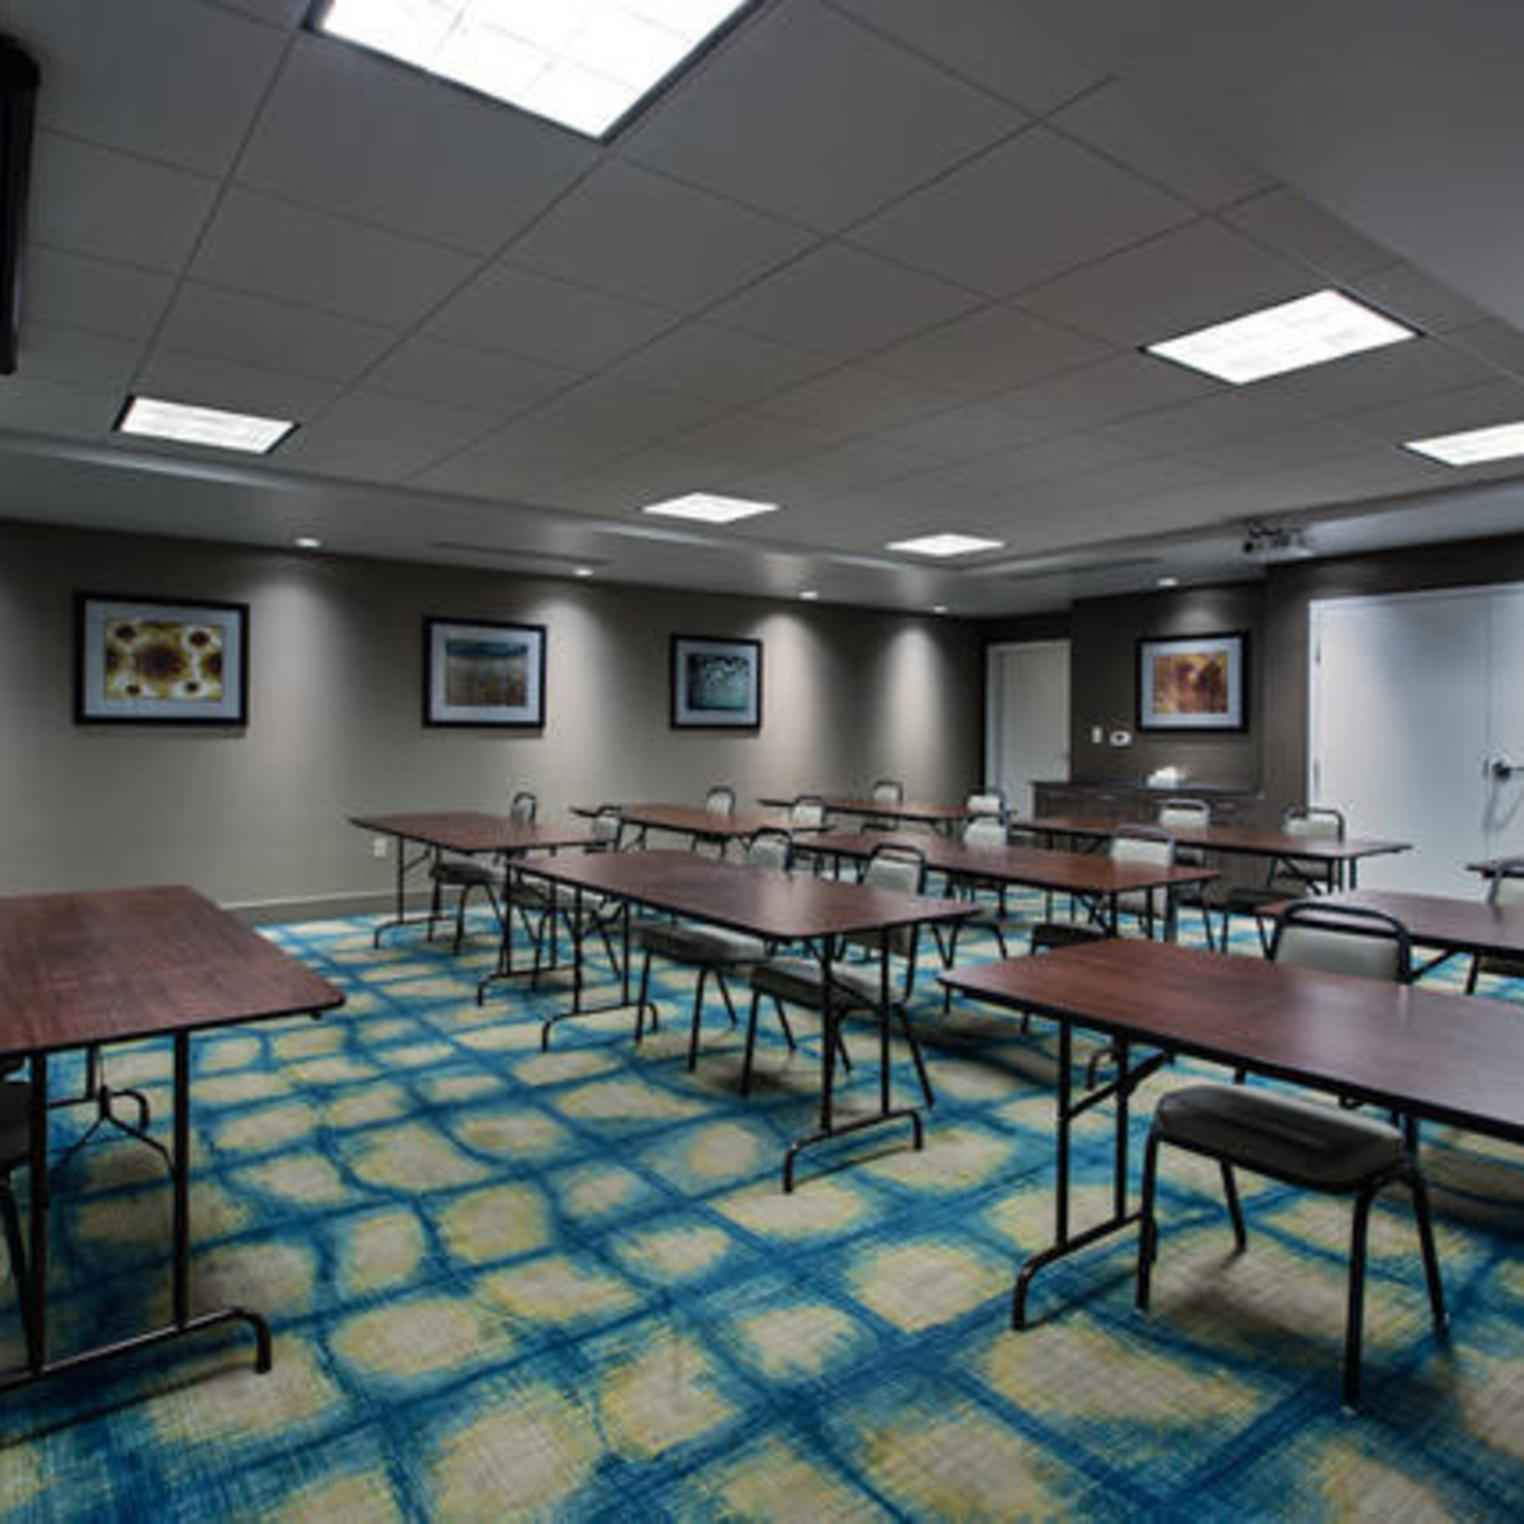 Holiday Inn Express and Suites Meeting Room